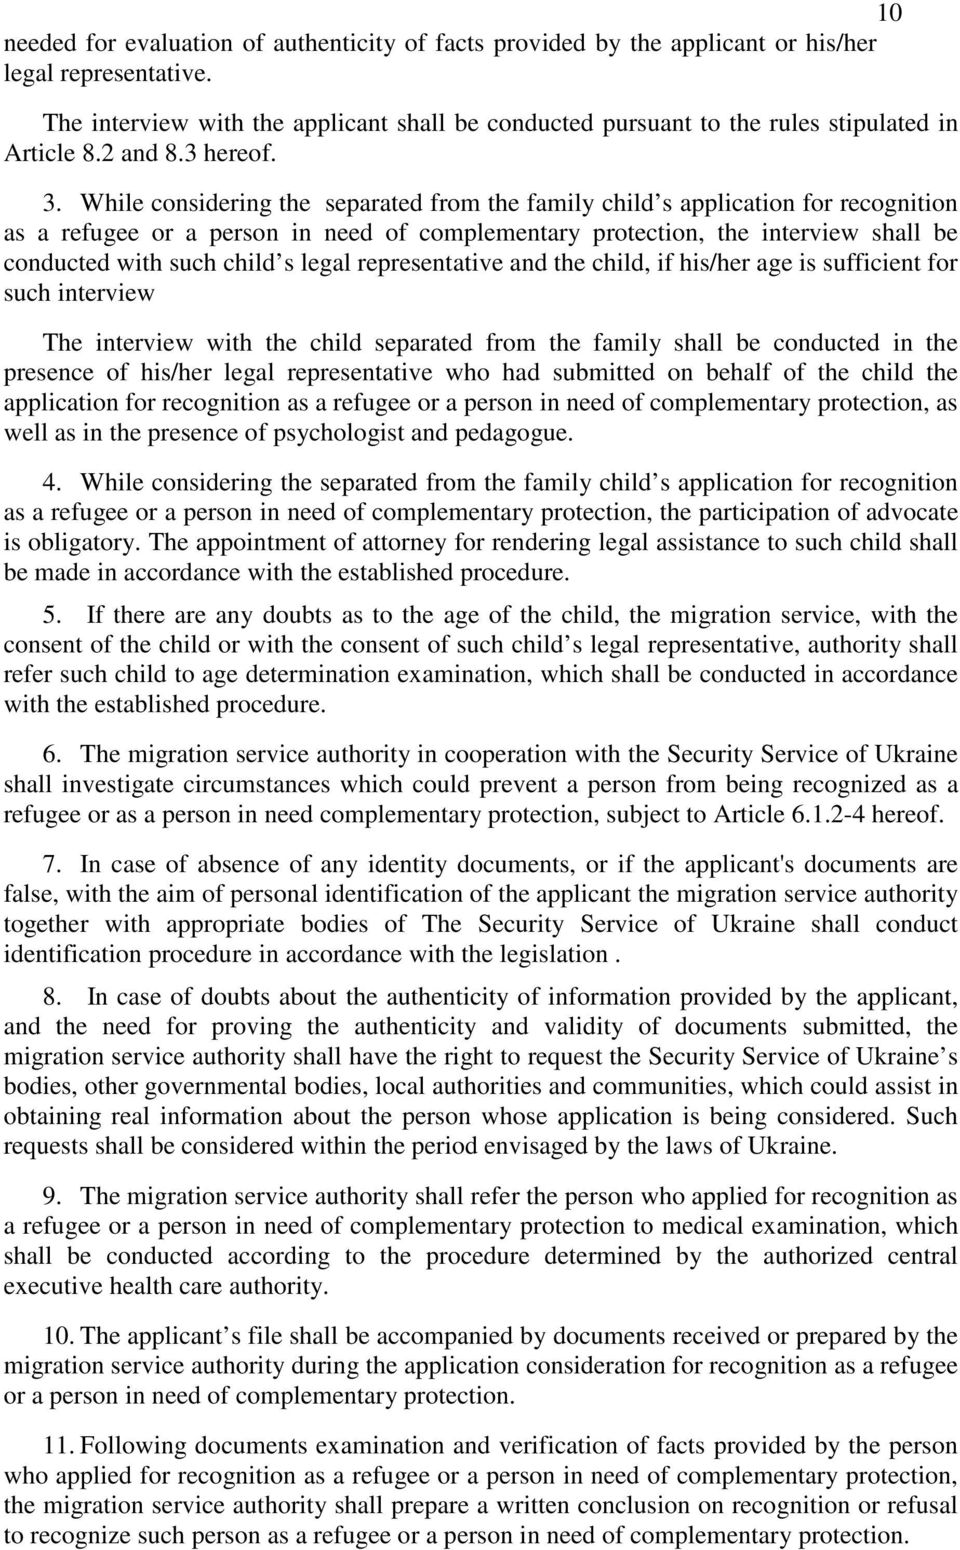 While considering the separated from the family child s application for recognition as a refugee or a person in need of complementary protection, the interview shall be conducted with such child s